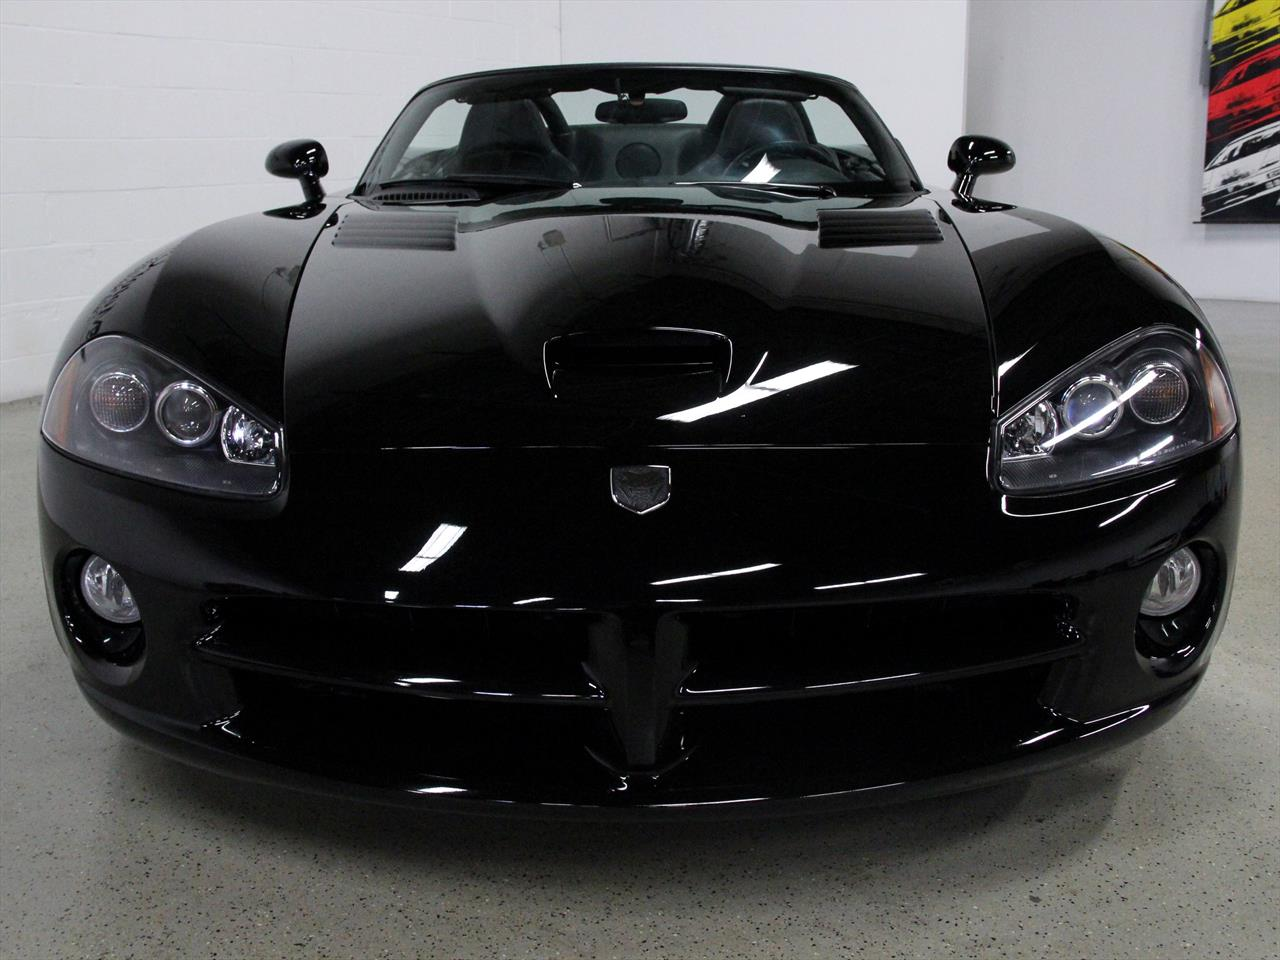 find used 2003 dodge viper srt 10 conv black black only 12k miles 500 hp very clean in. Black Bedroom Furniture Sets. Home Design Ideas